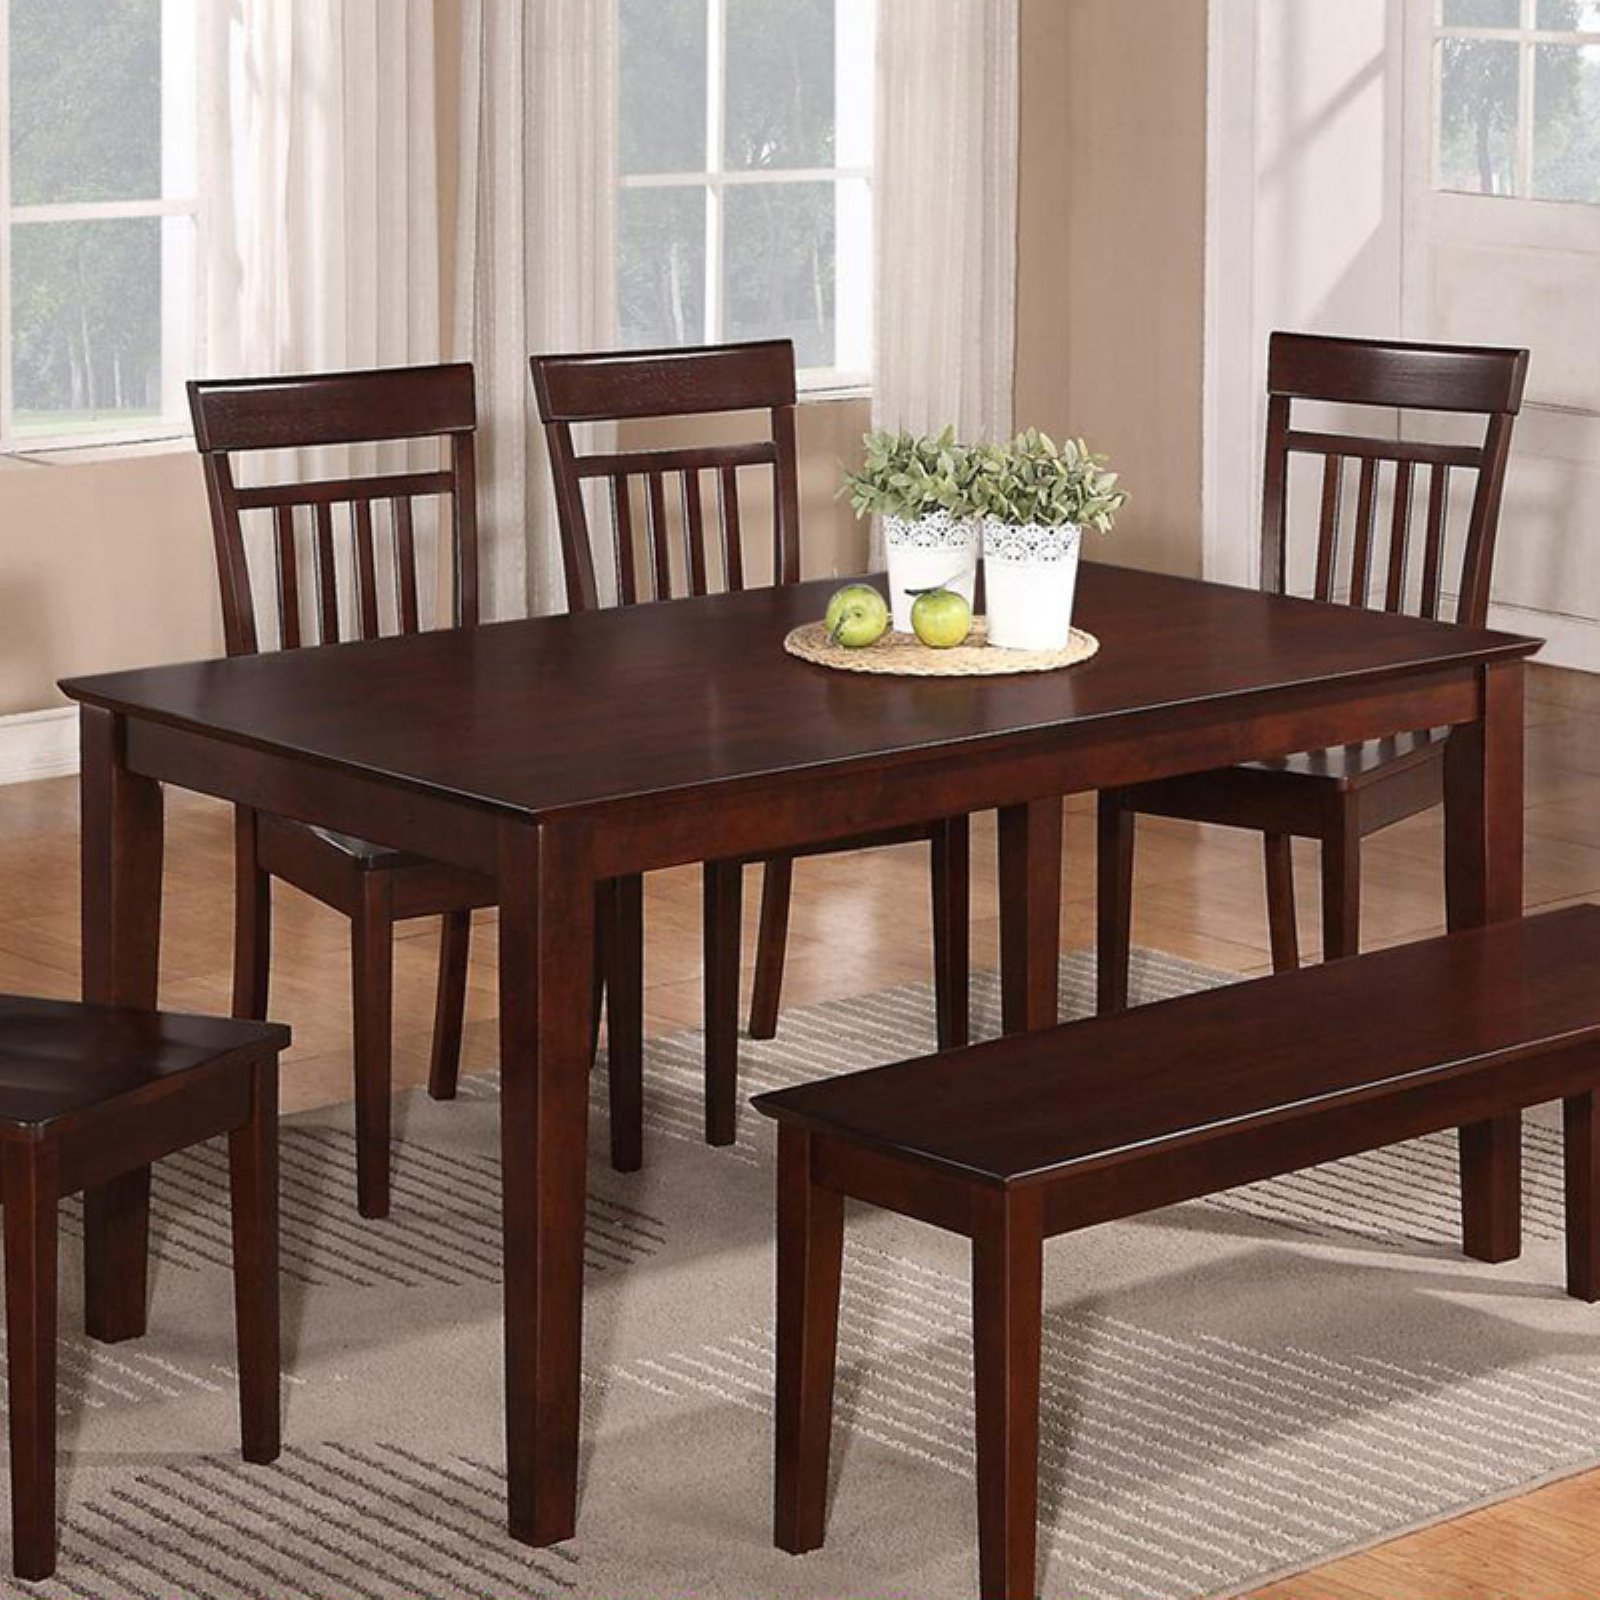 East West Furniture Capri Solid Wood Top Rectangular Dining Table